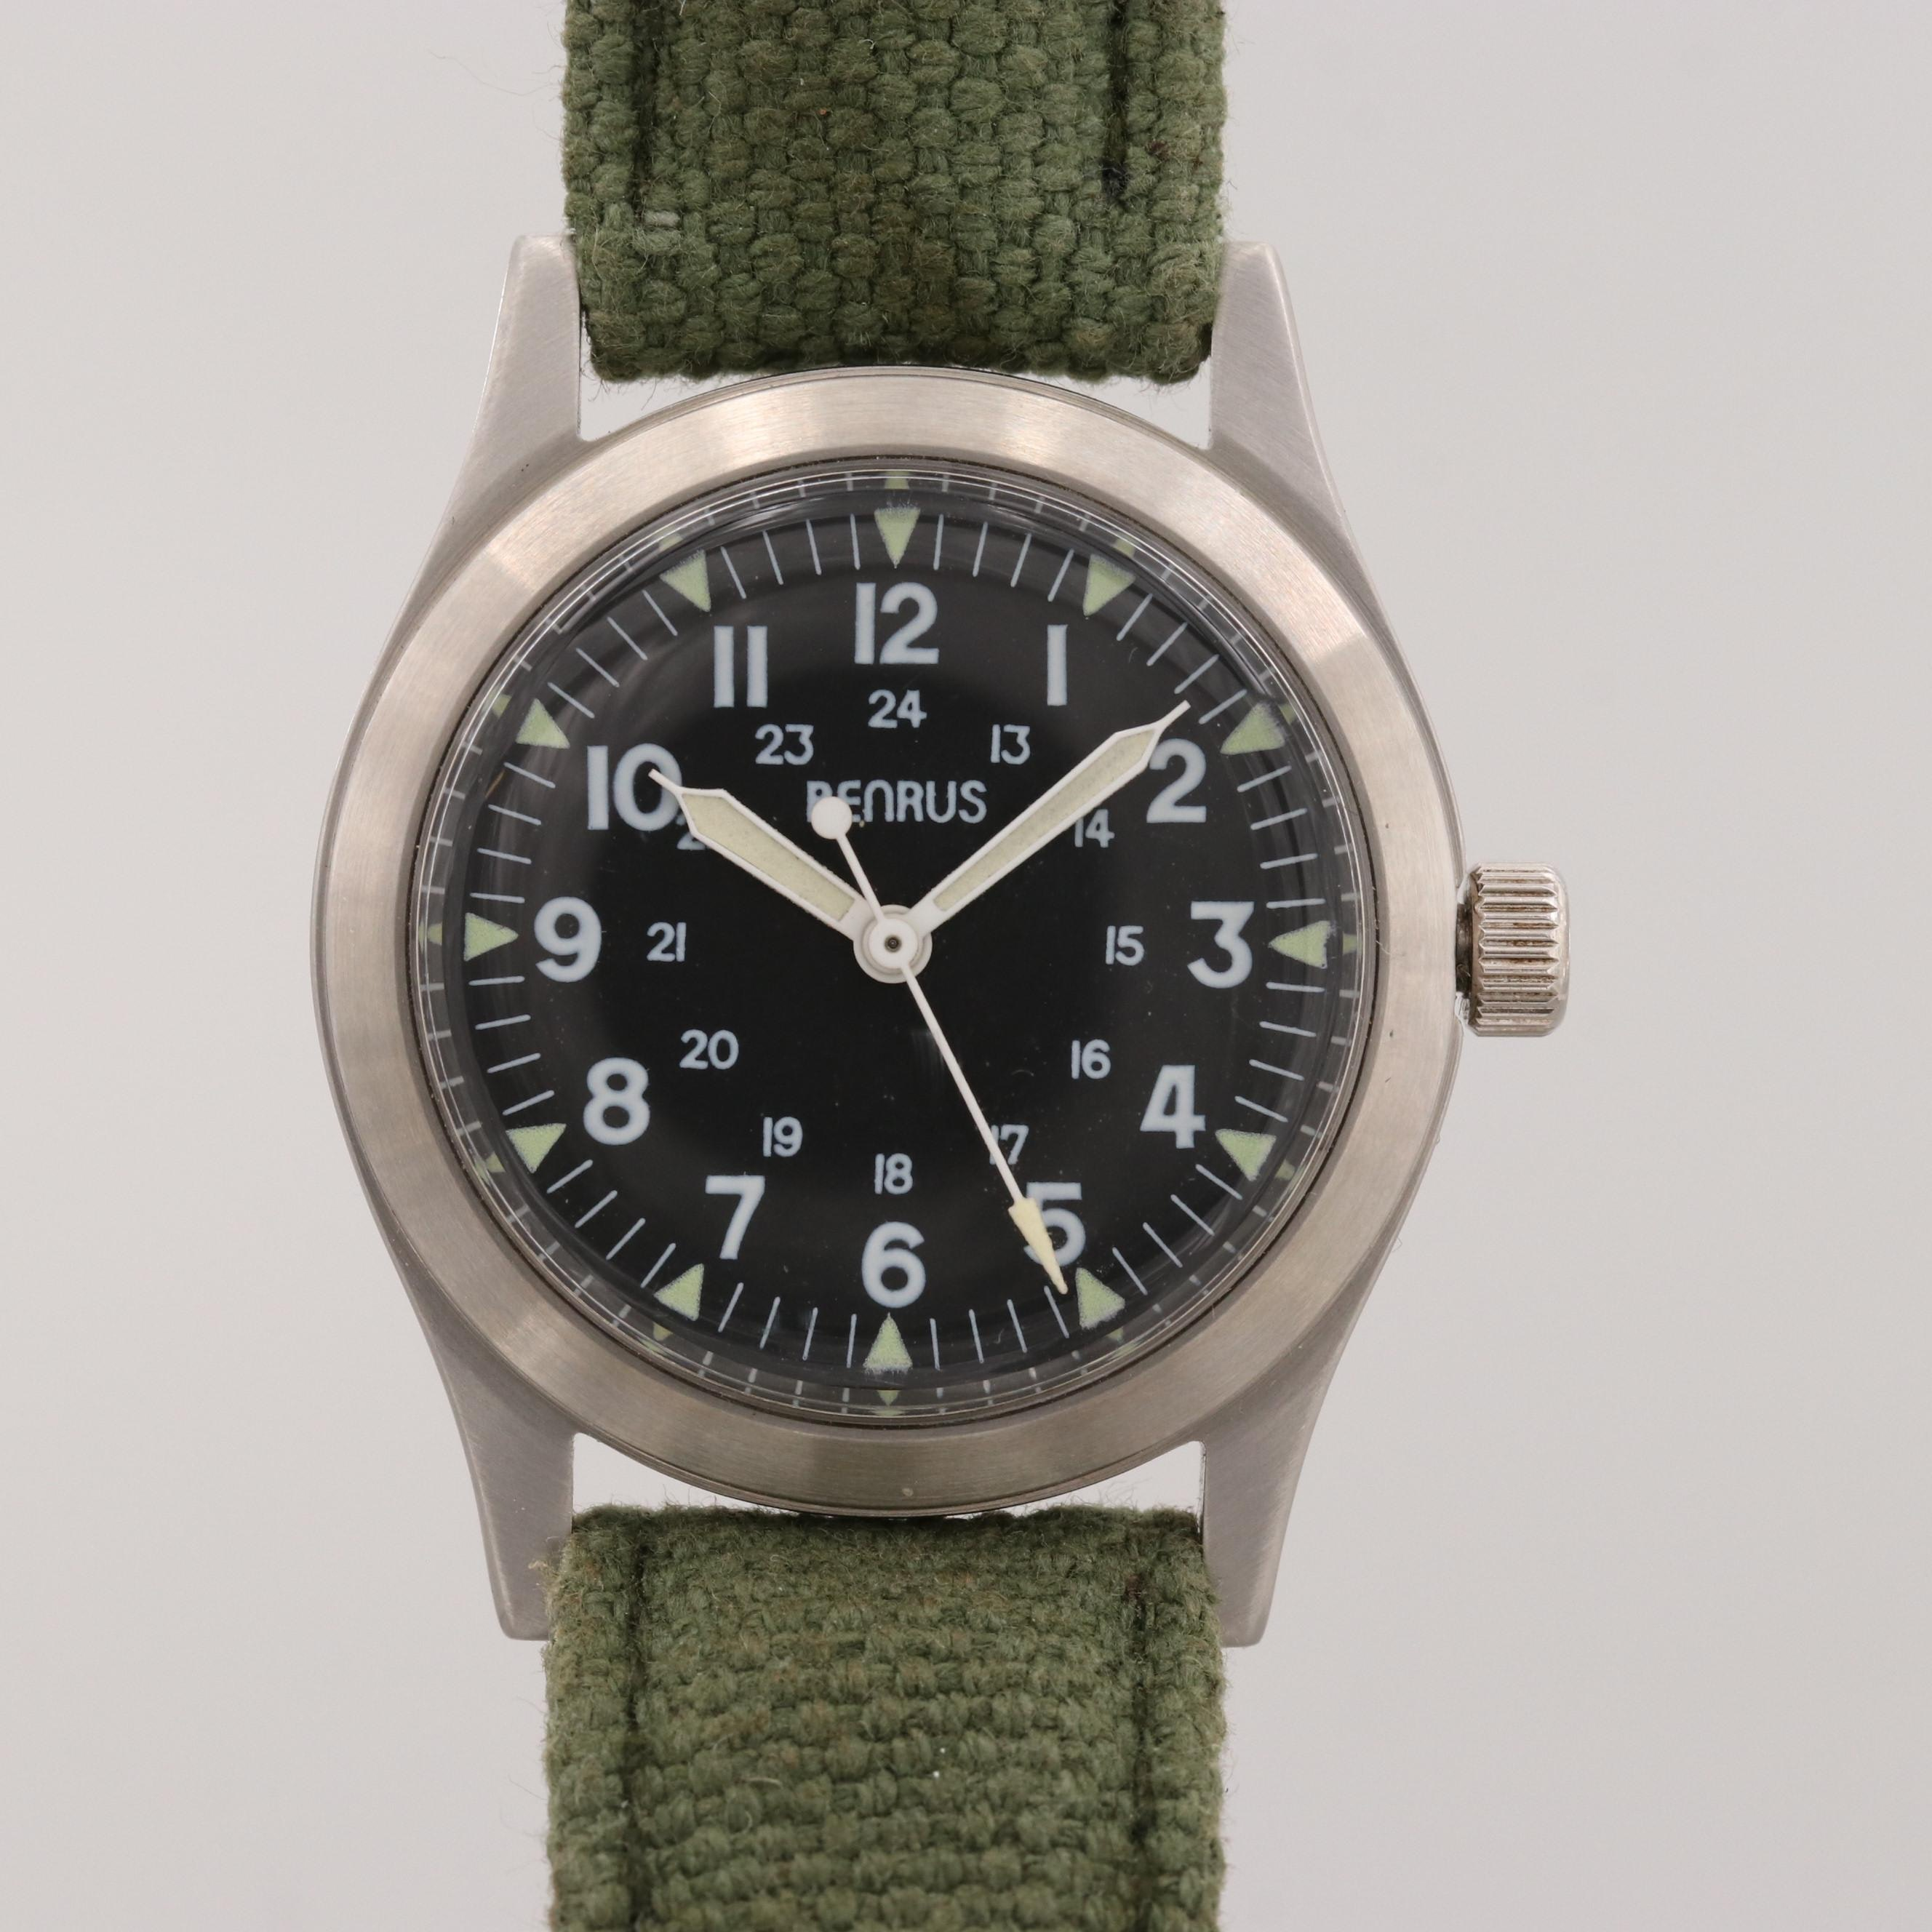 Benrus Stainless Steel Stem Wind Commemorative Military Wristwatch Re-Issue